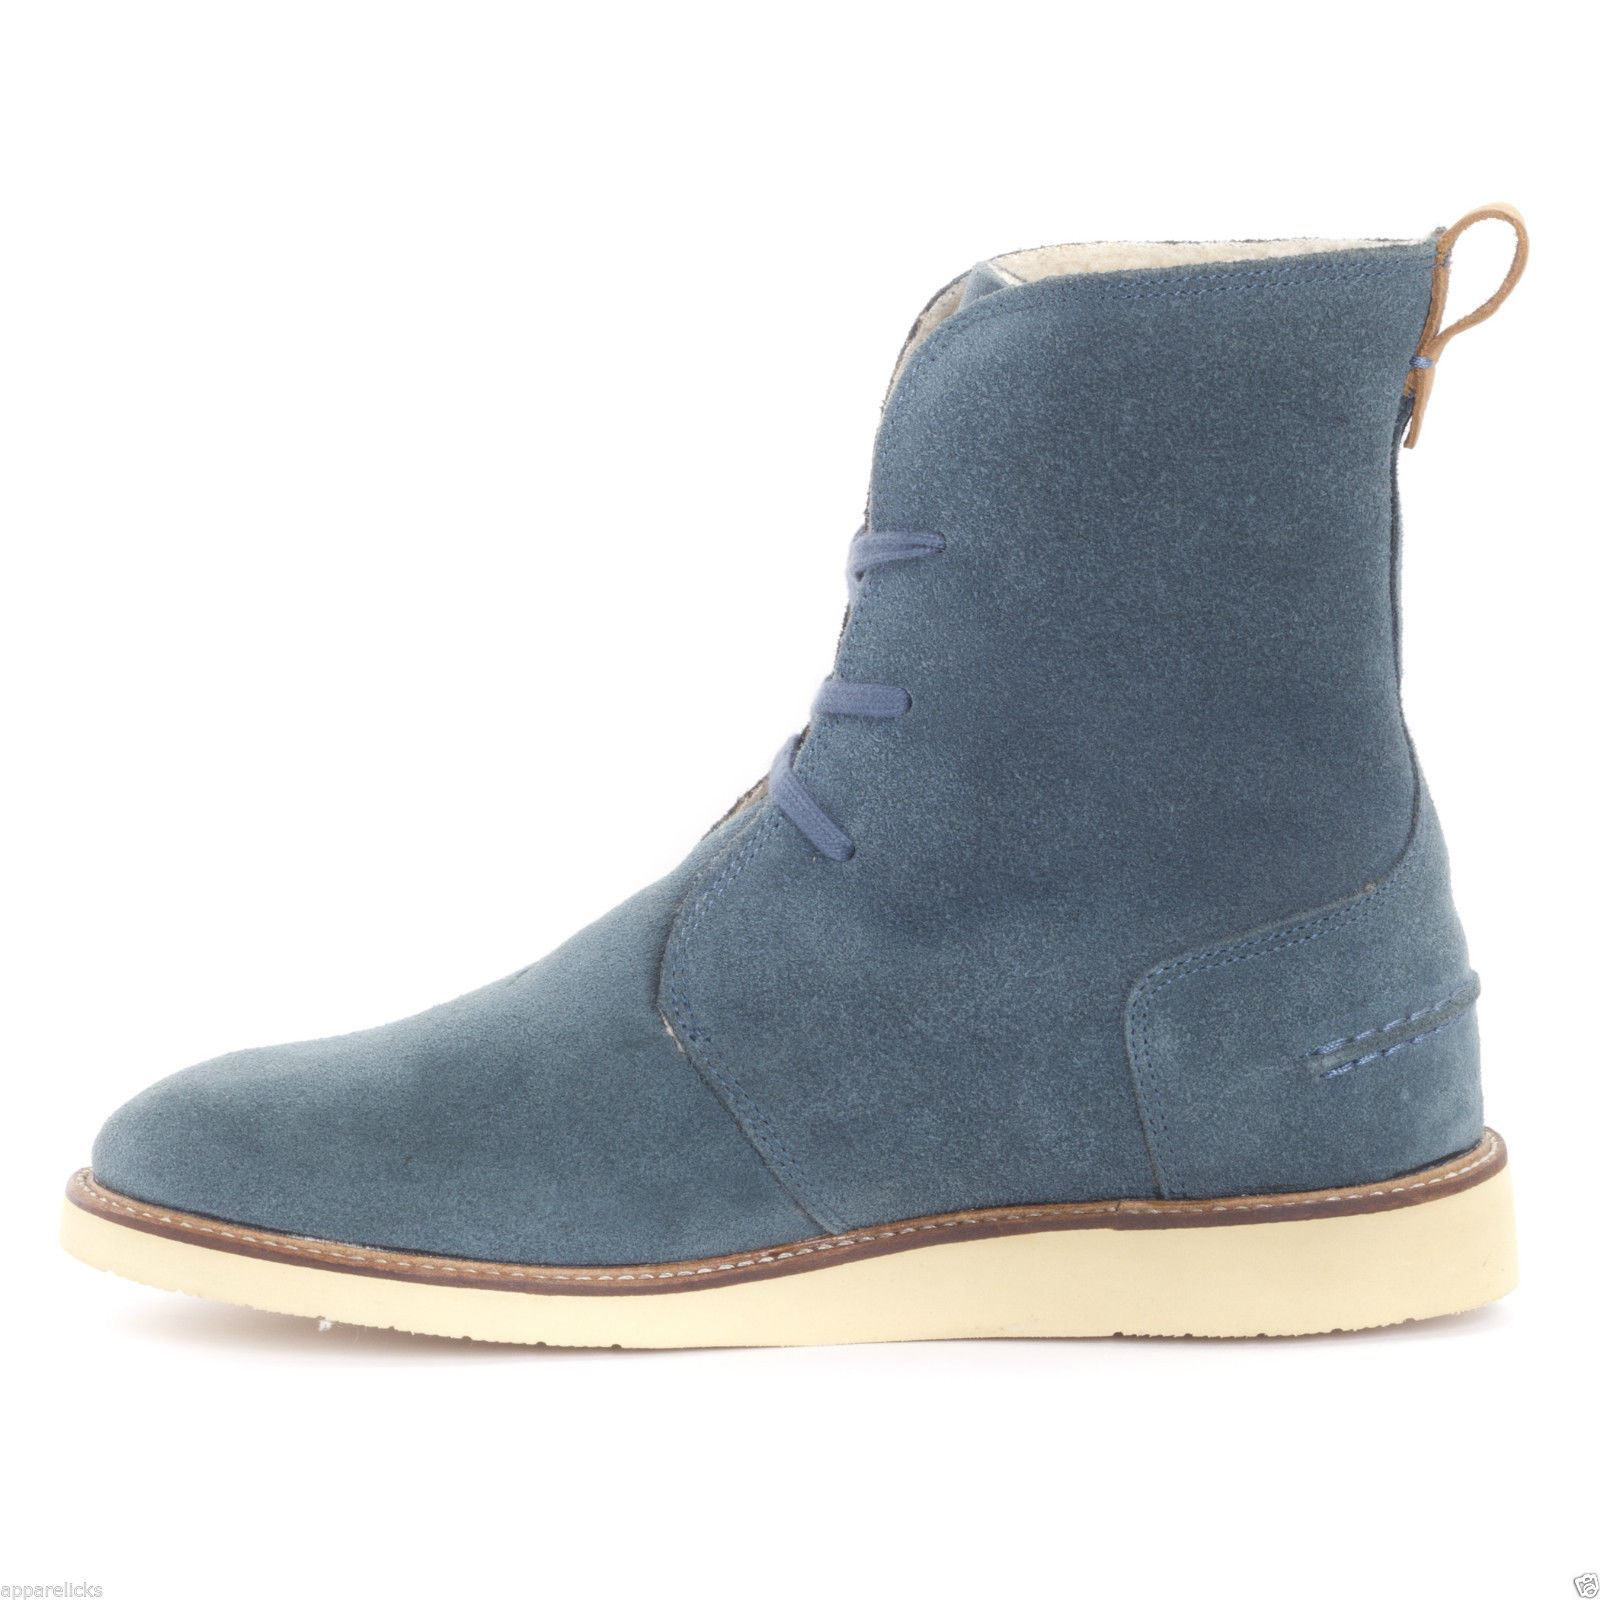 New Details About Lacoste Zerubia Ladies Snow Boots Navy